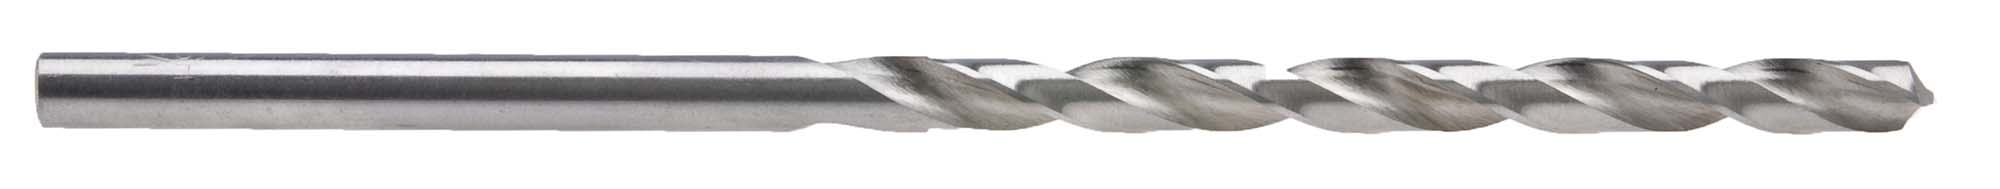 "35/64""  ""Taper Length"" Long Straight Shank Drill Bit, 8 1/4"" Overall Length, High Speed Steel"